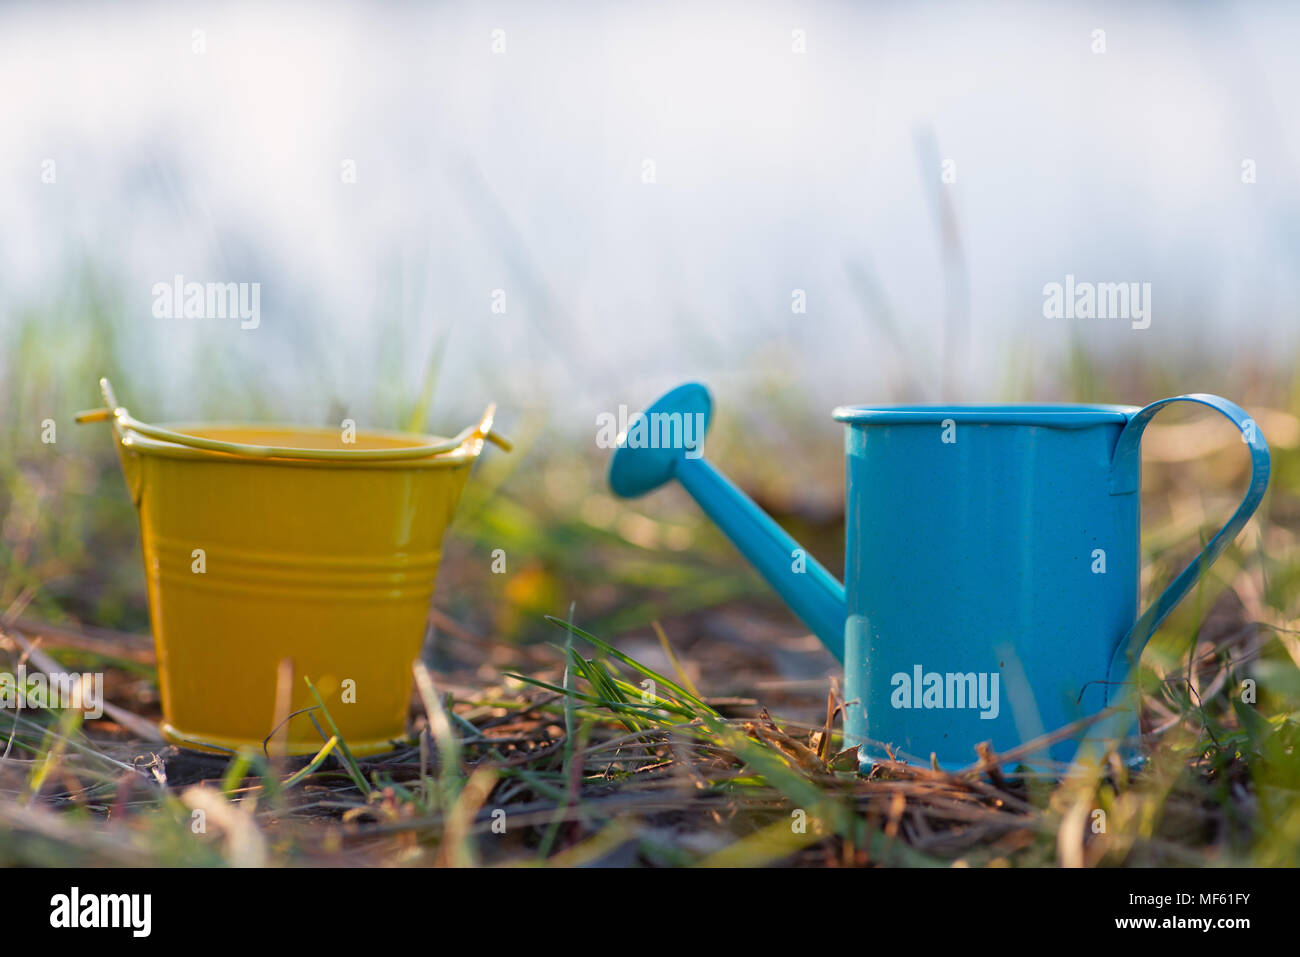 Garden watering can and bucket - Stock Image